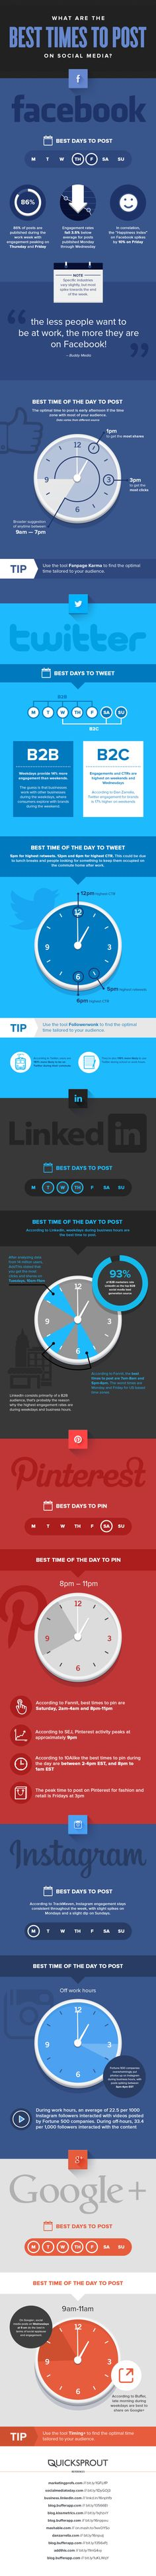 What Are the Best Times to Post on Social Media? [INFOGRAPHIC] Do you post your social media content when your audience has the highest chance of seeing it? Are you wondering, what is the best time to share your post(s) on social media to get the maximum interaction? This infographic from Quicksprout, highlights the optimal times to post to all the major social networking sites: Facebook, LinkedIn, Twitter, Google Plus, Instagram and Pinterest.